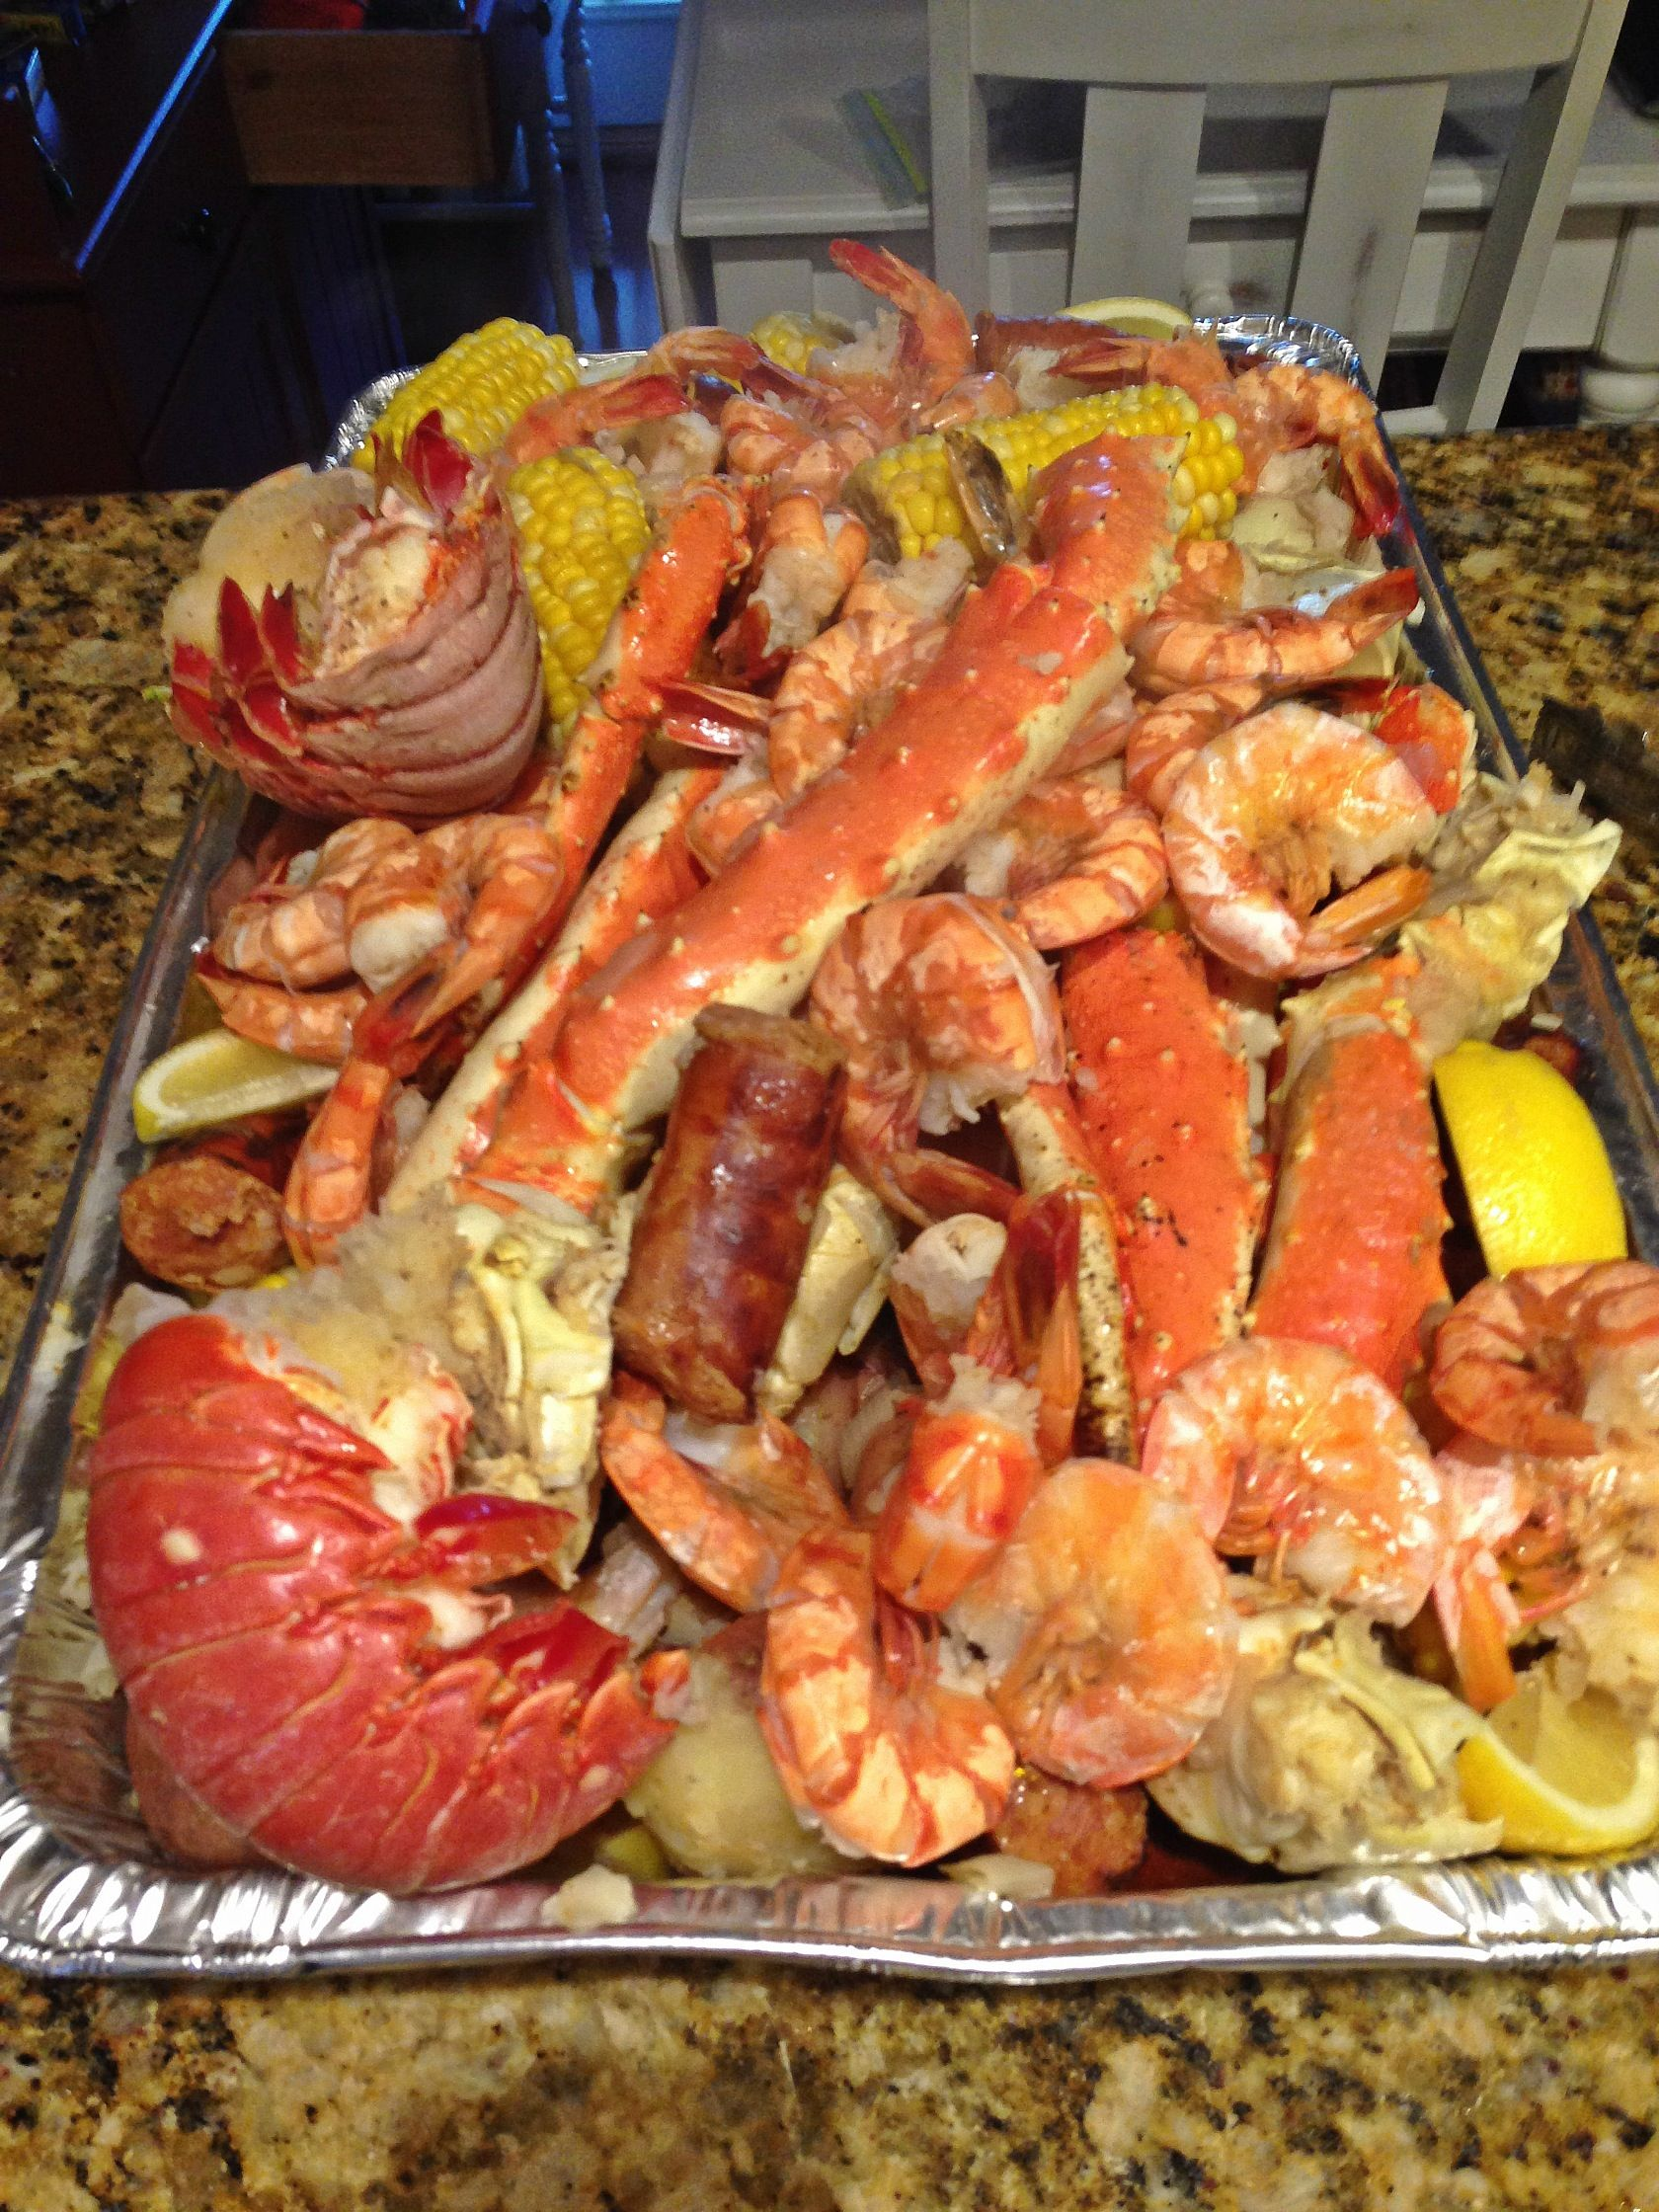 Forum on this topic: How to Cook King Crab Legs, how-to-cook-king-crab-legs/